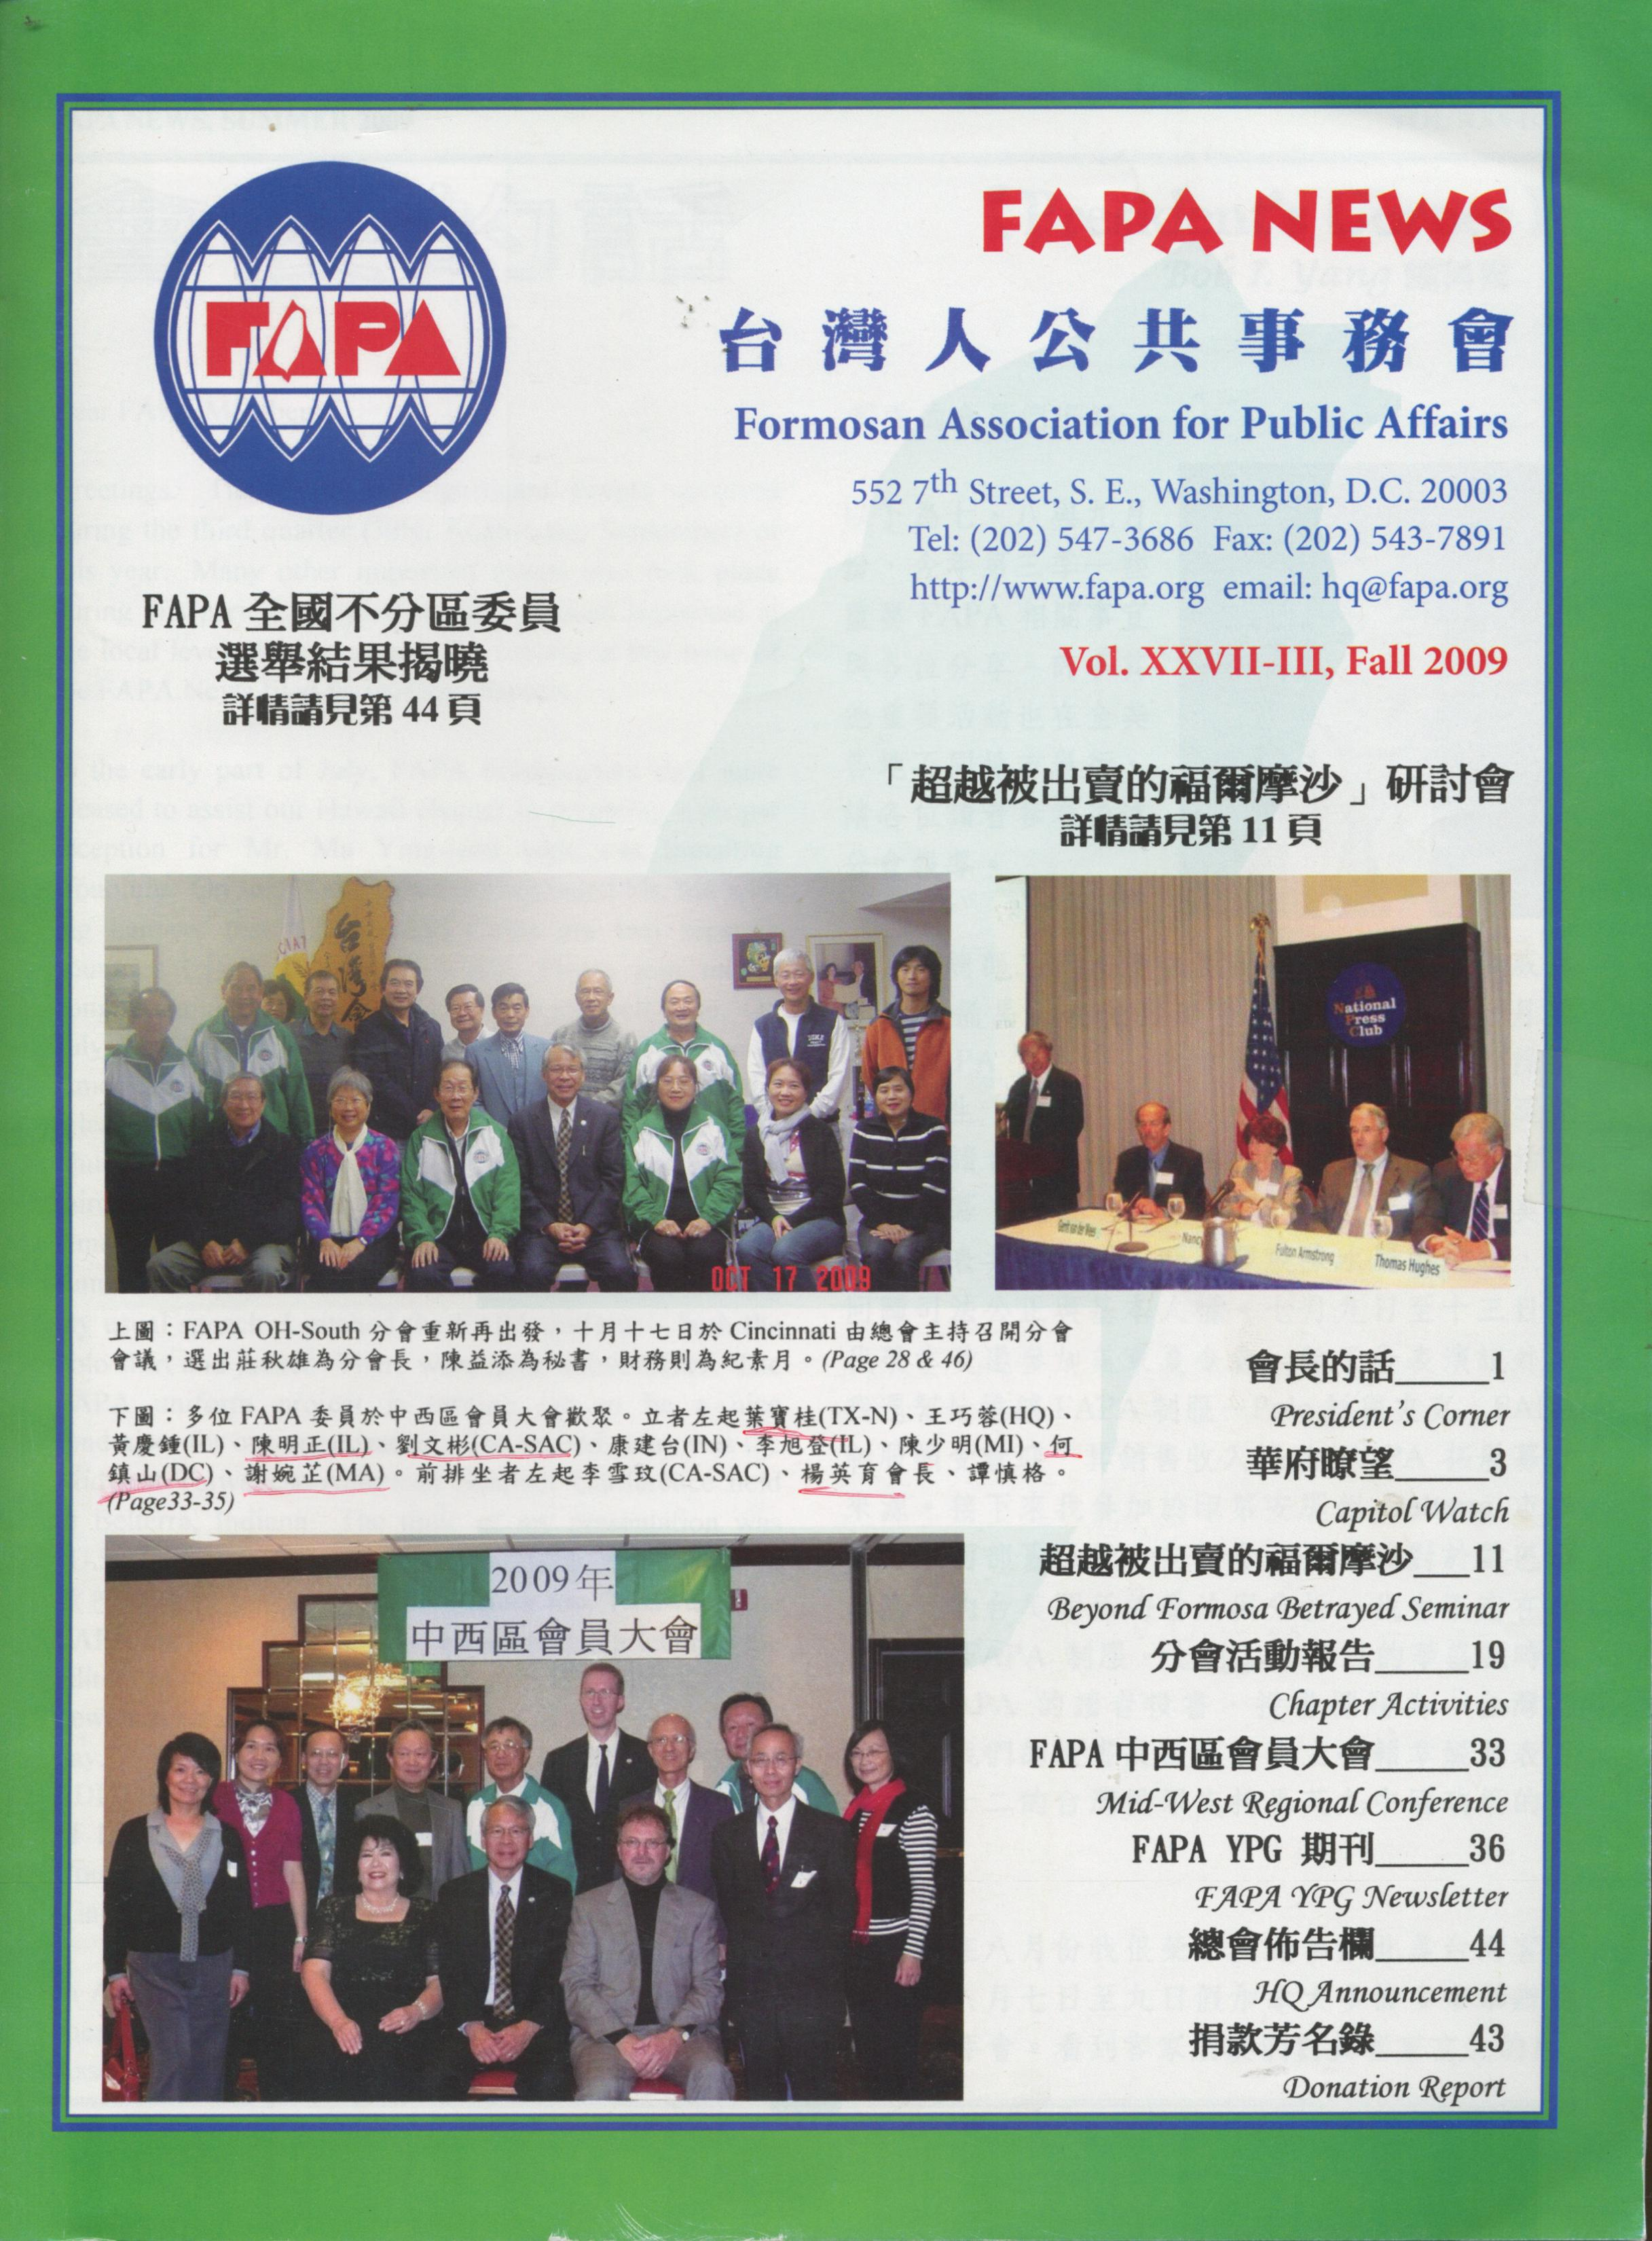 93. 台美團體出版的雜誌封面 The Front Covers of Magazines published by T.A. Organizations/2015/07